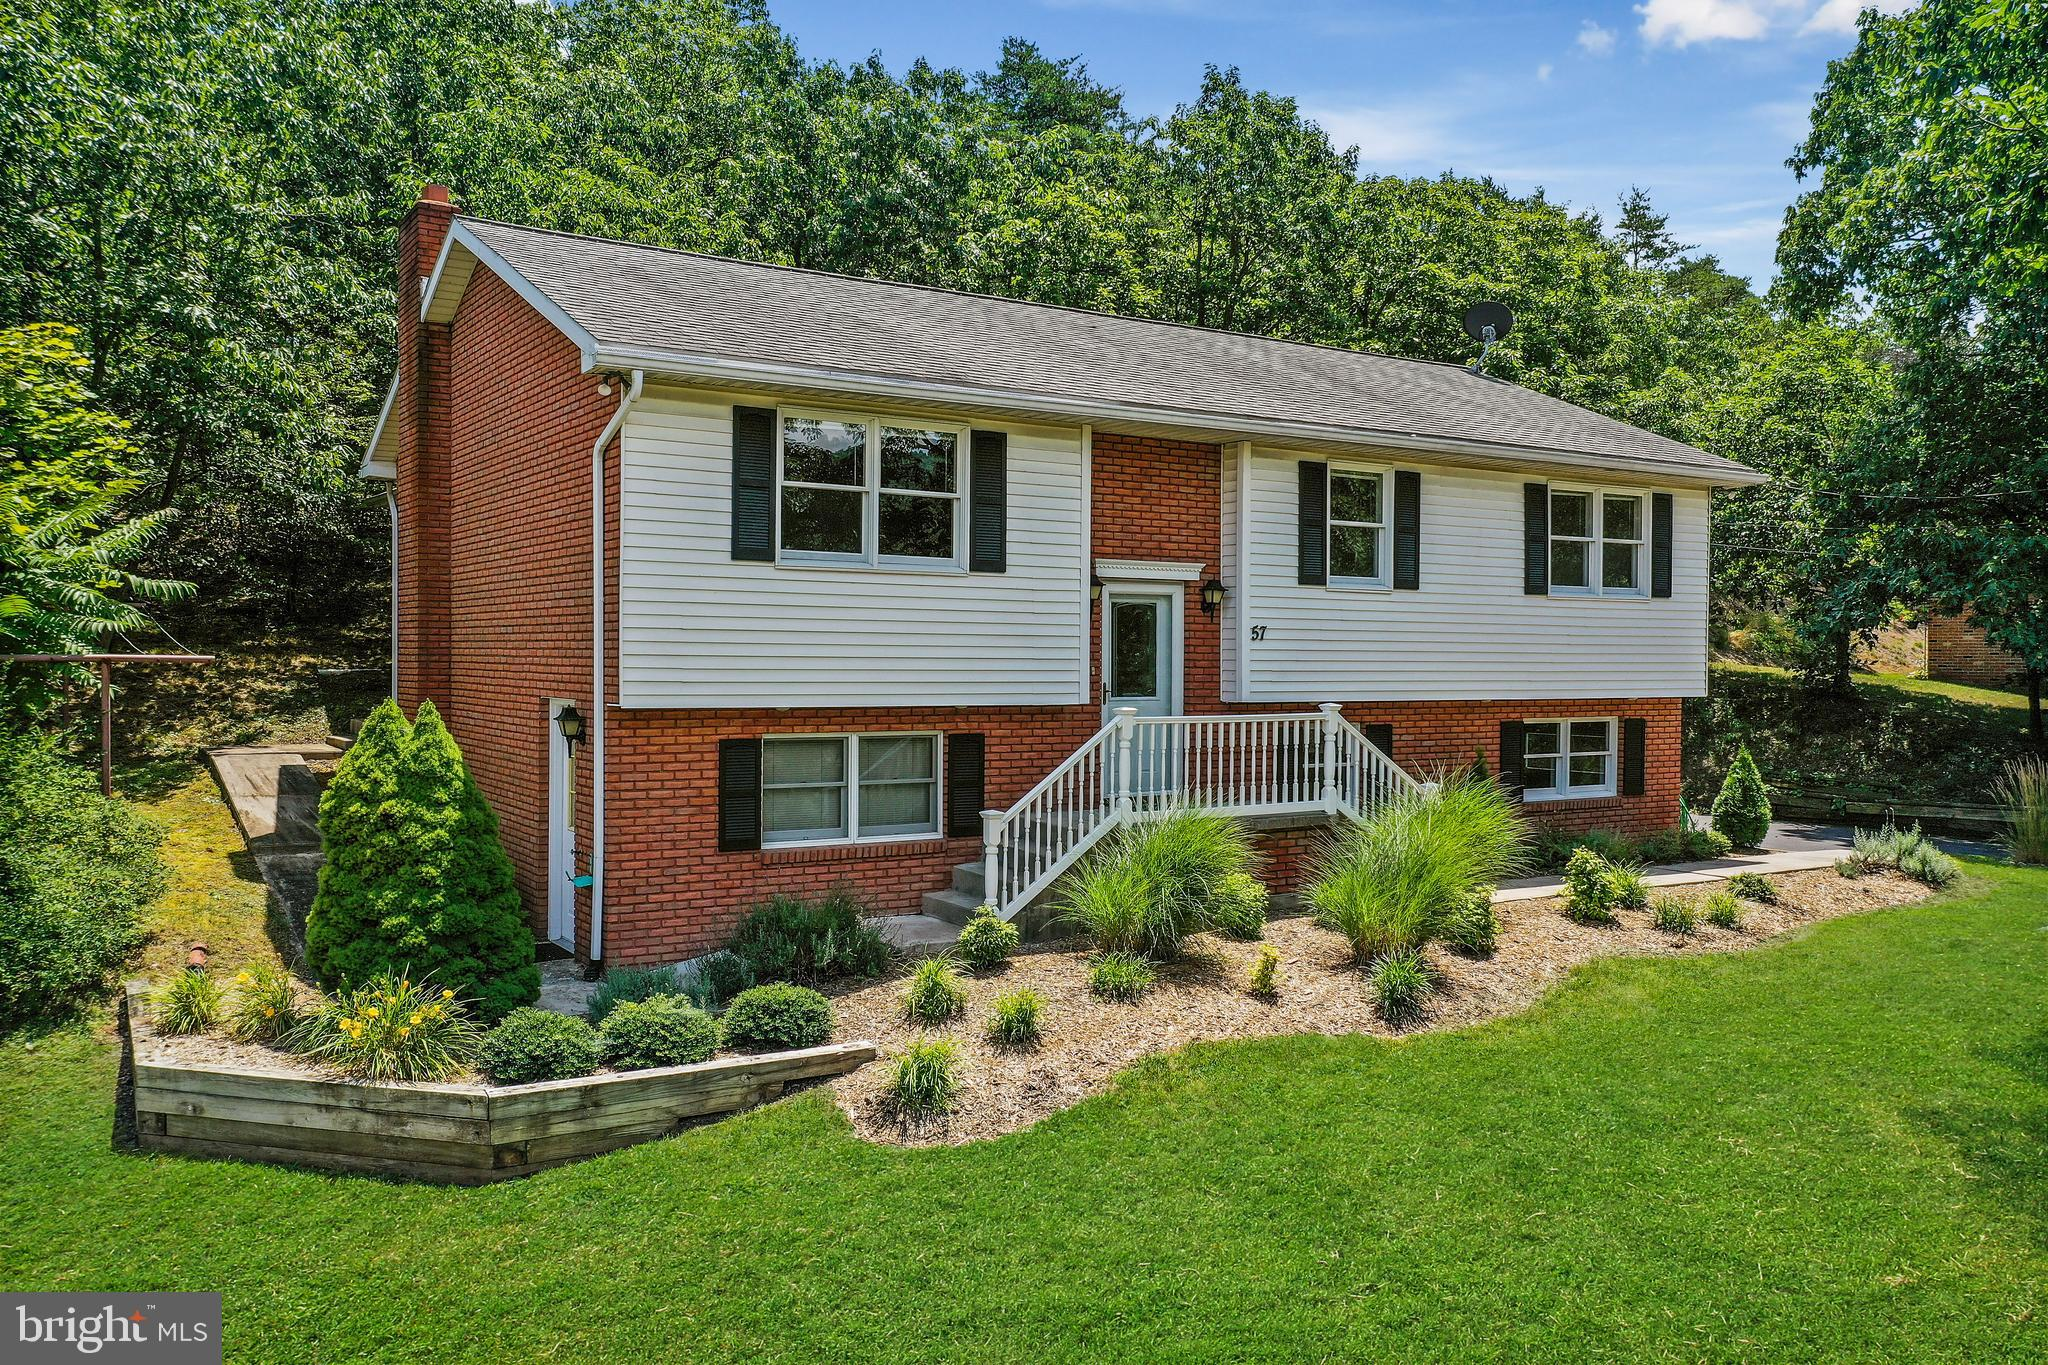 57 DAVY LANE, WILEY FORD, WV 26767